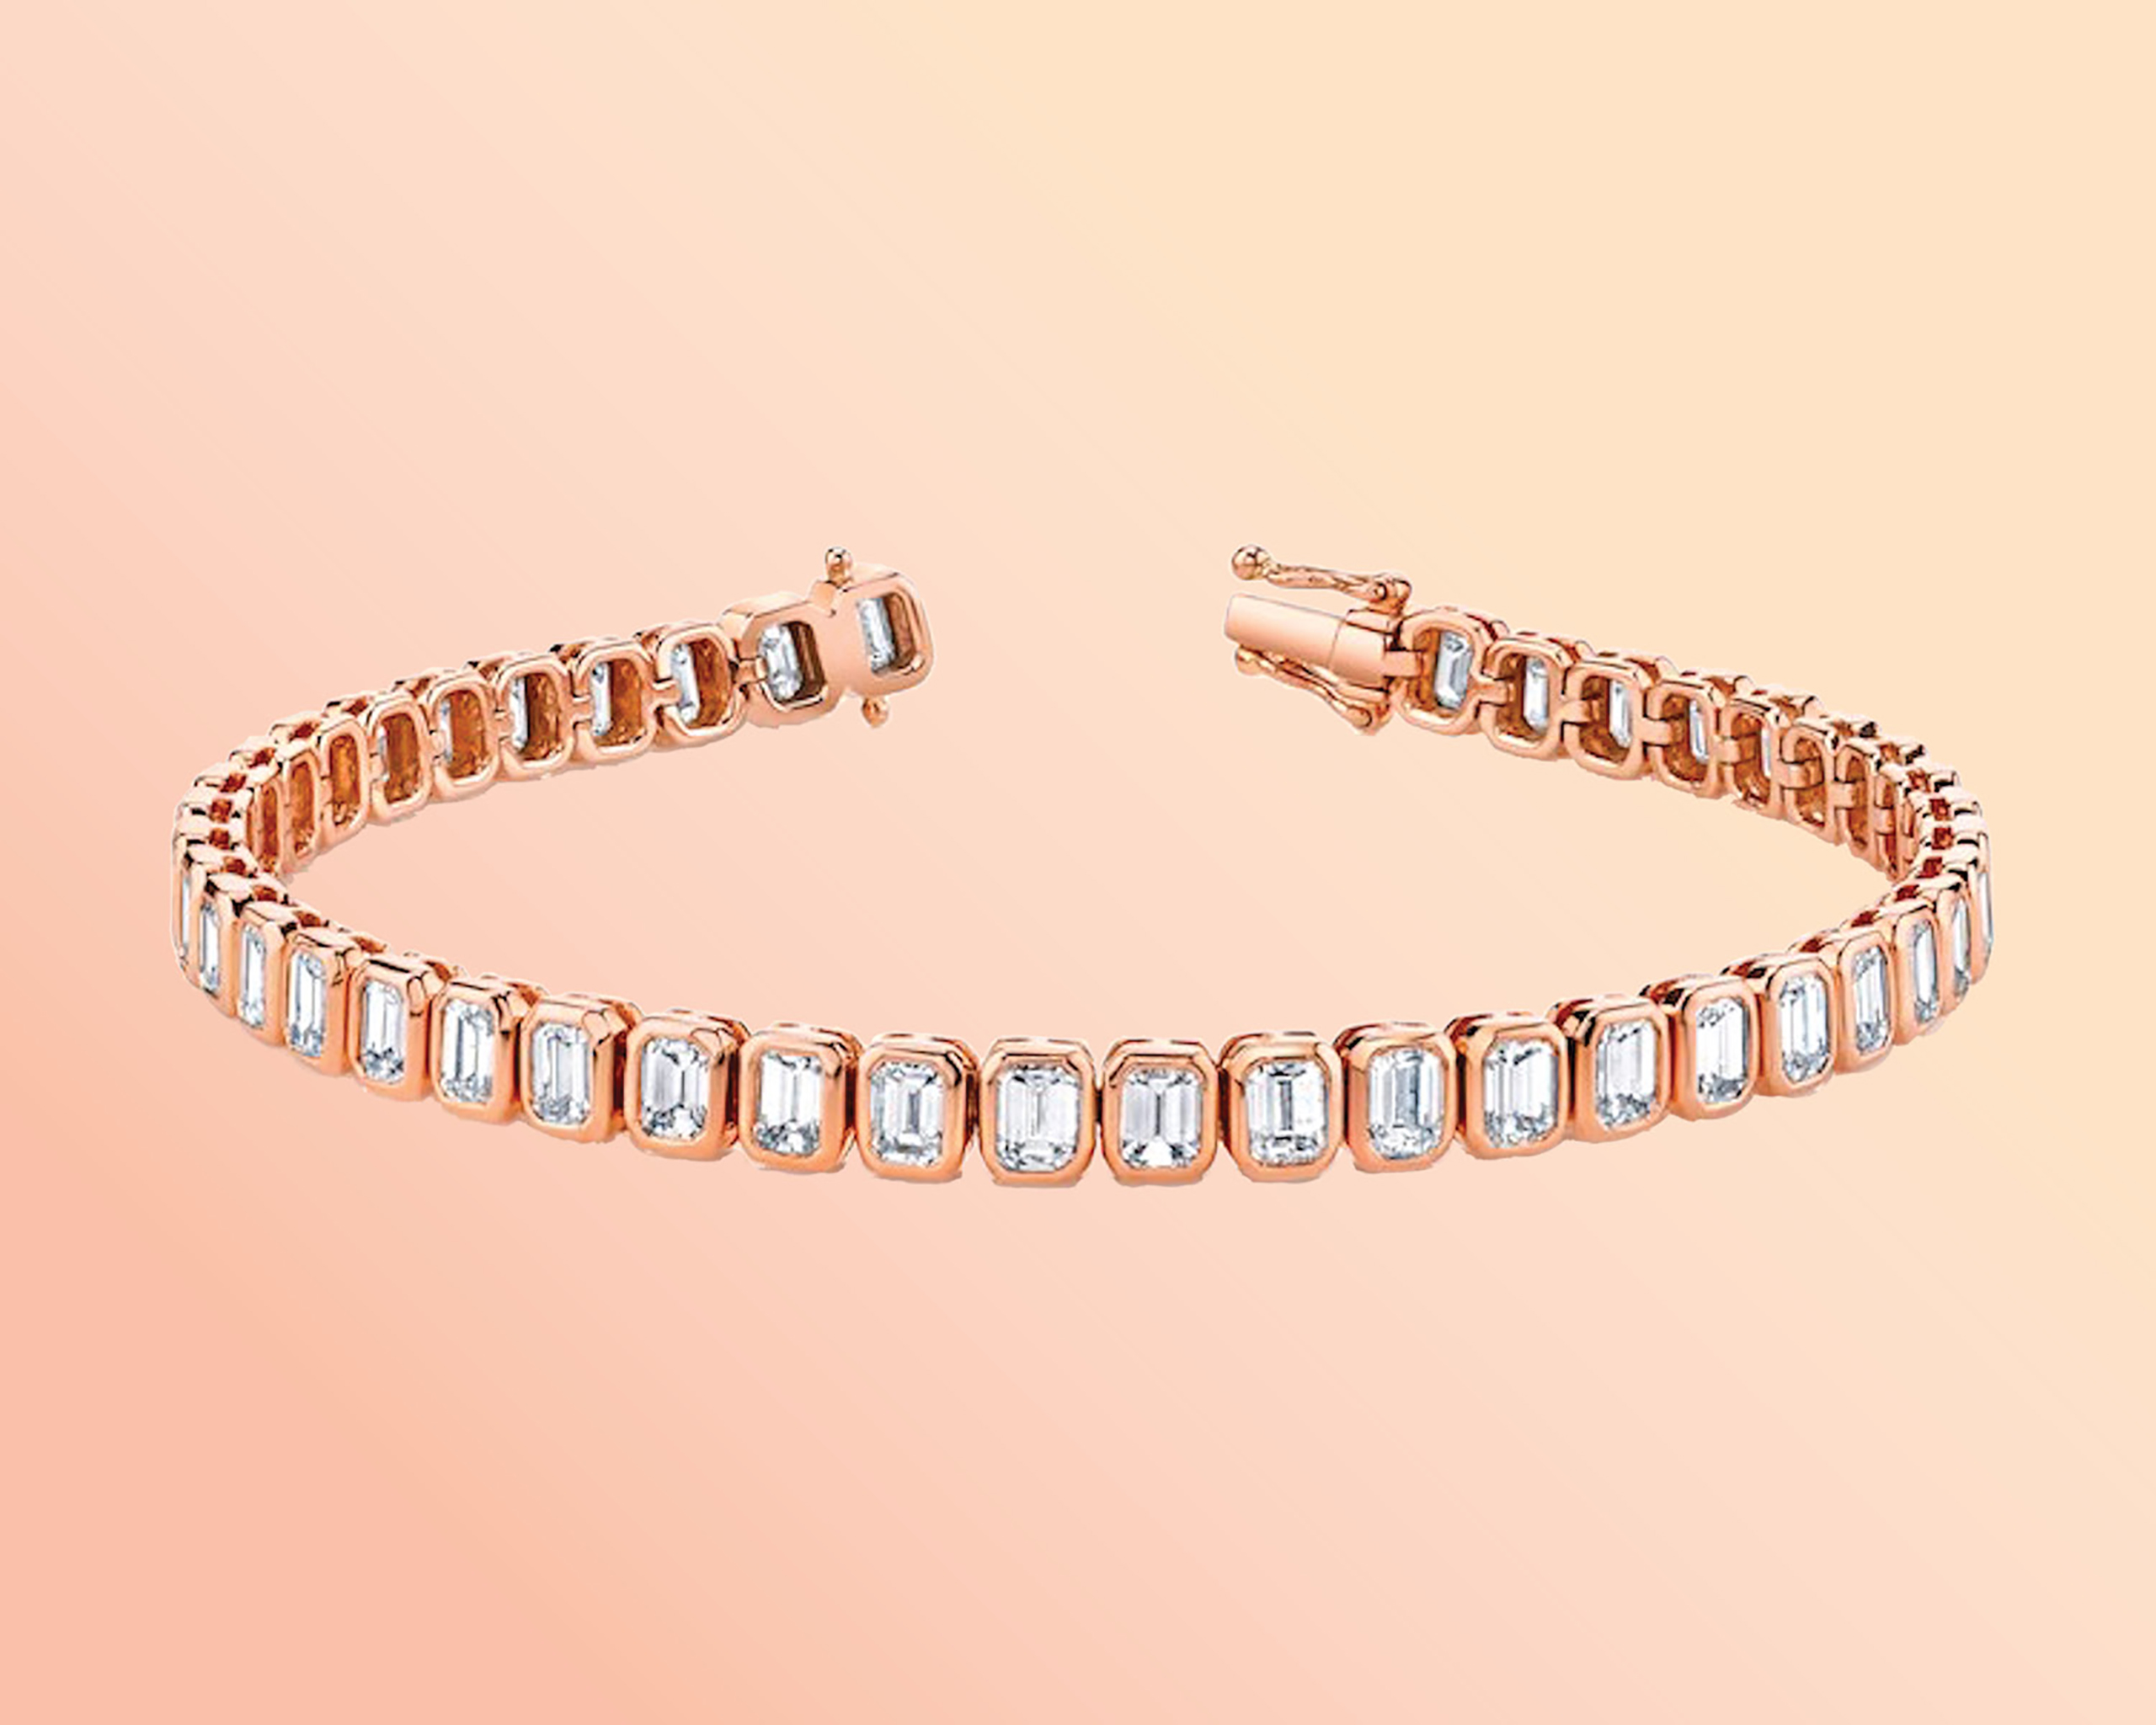 Emerald cut diamond tennis bracelet with 18k rose gold from Anita Ko